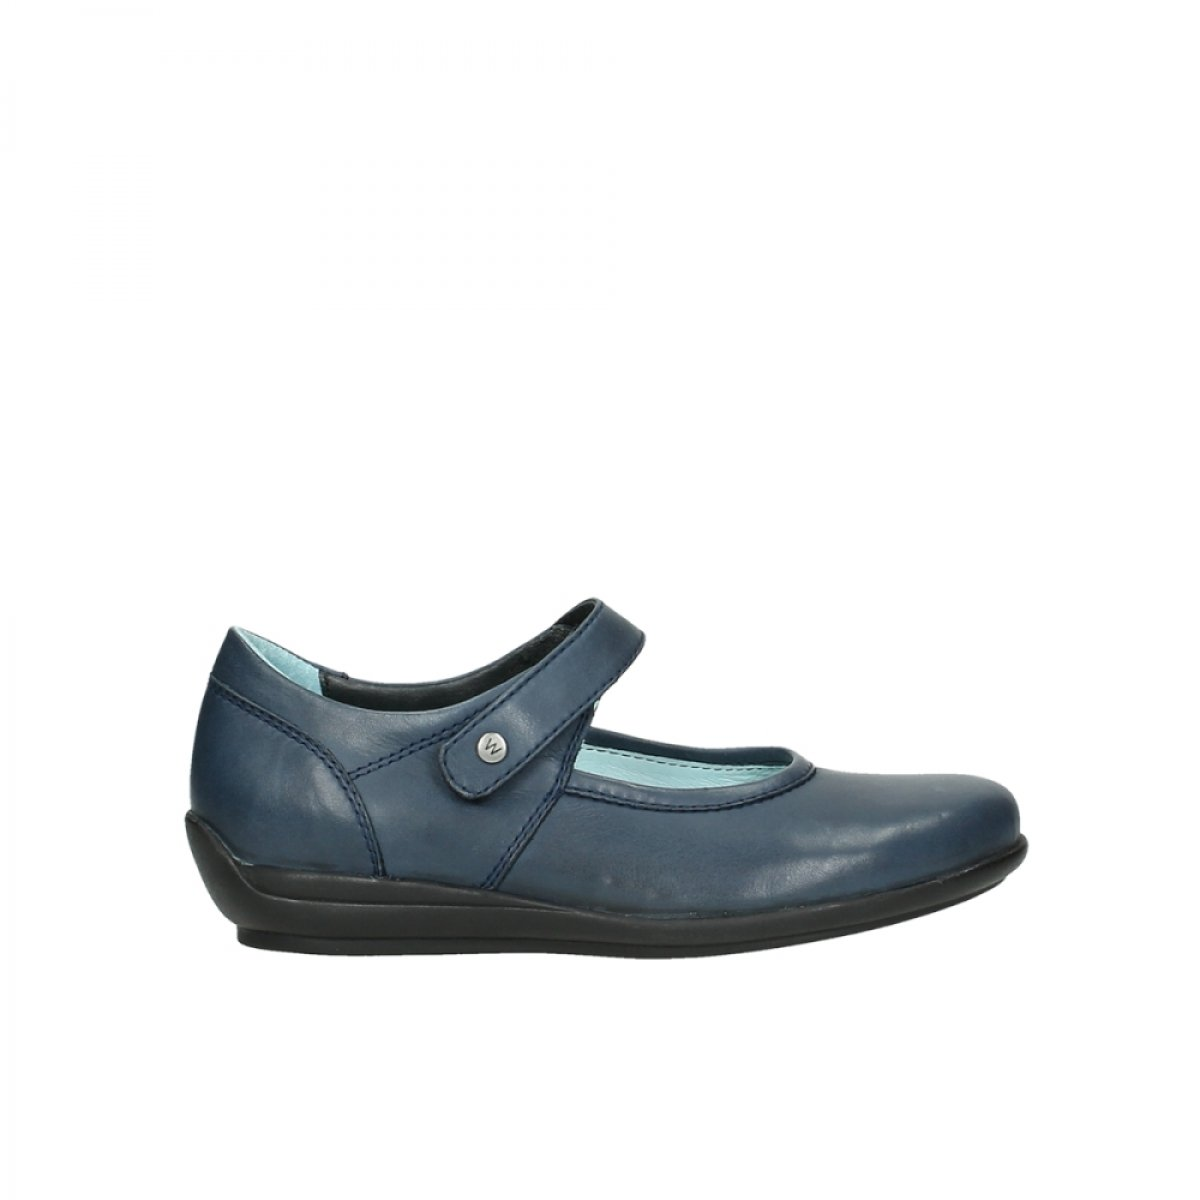 Wolky Comfort Mary Janes Noble B01ITOM0I8 42 M EU|30800 Blue Leather